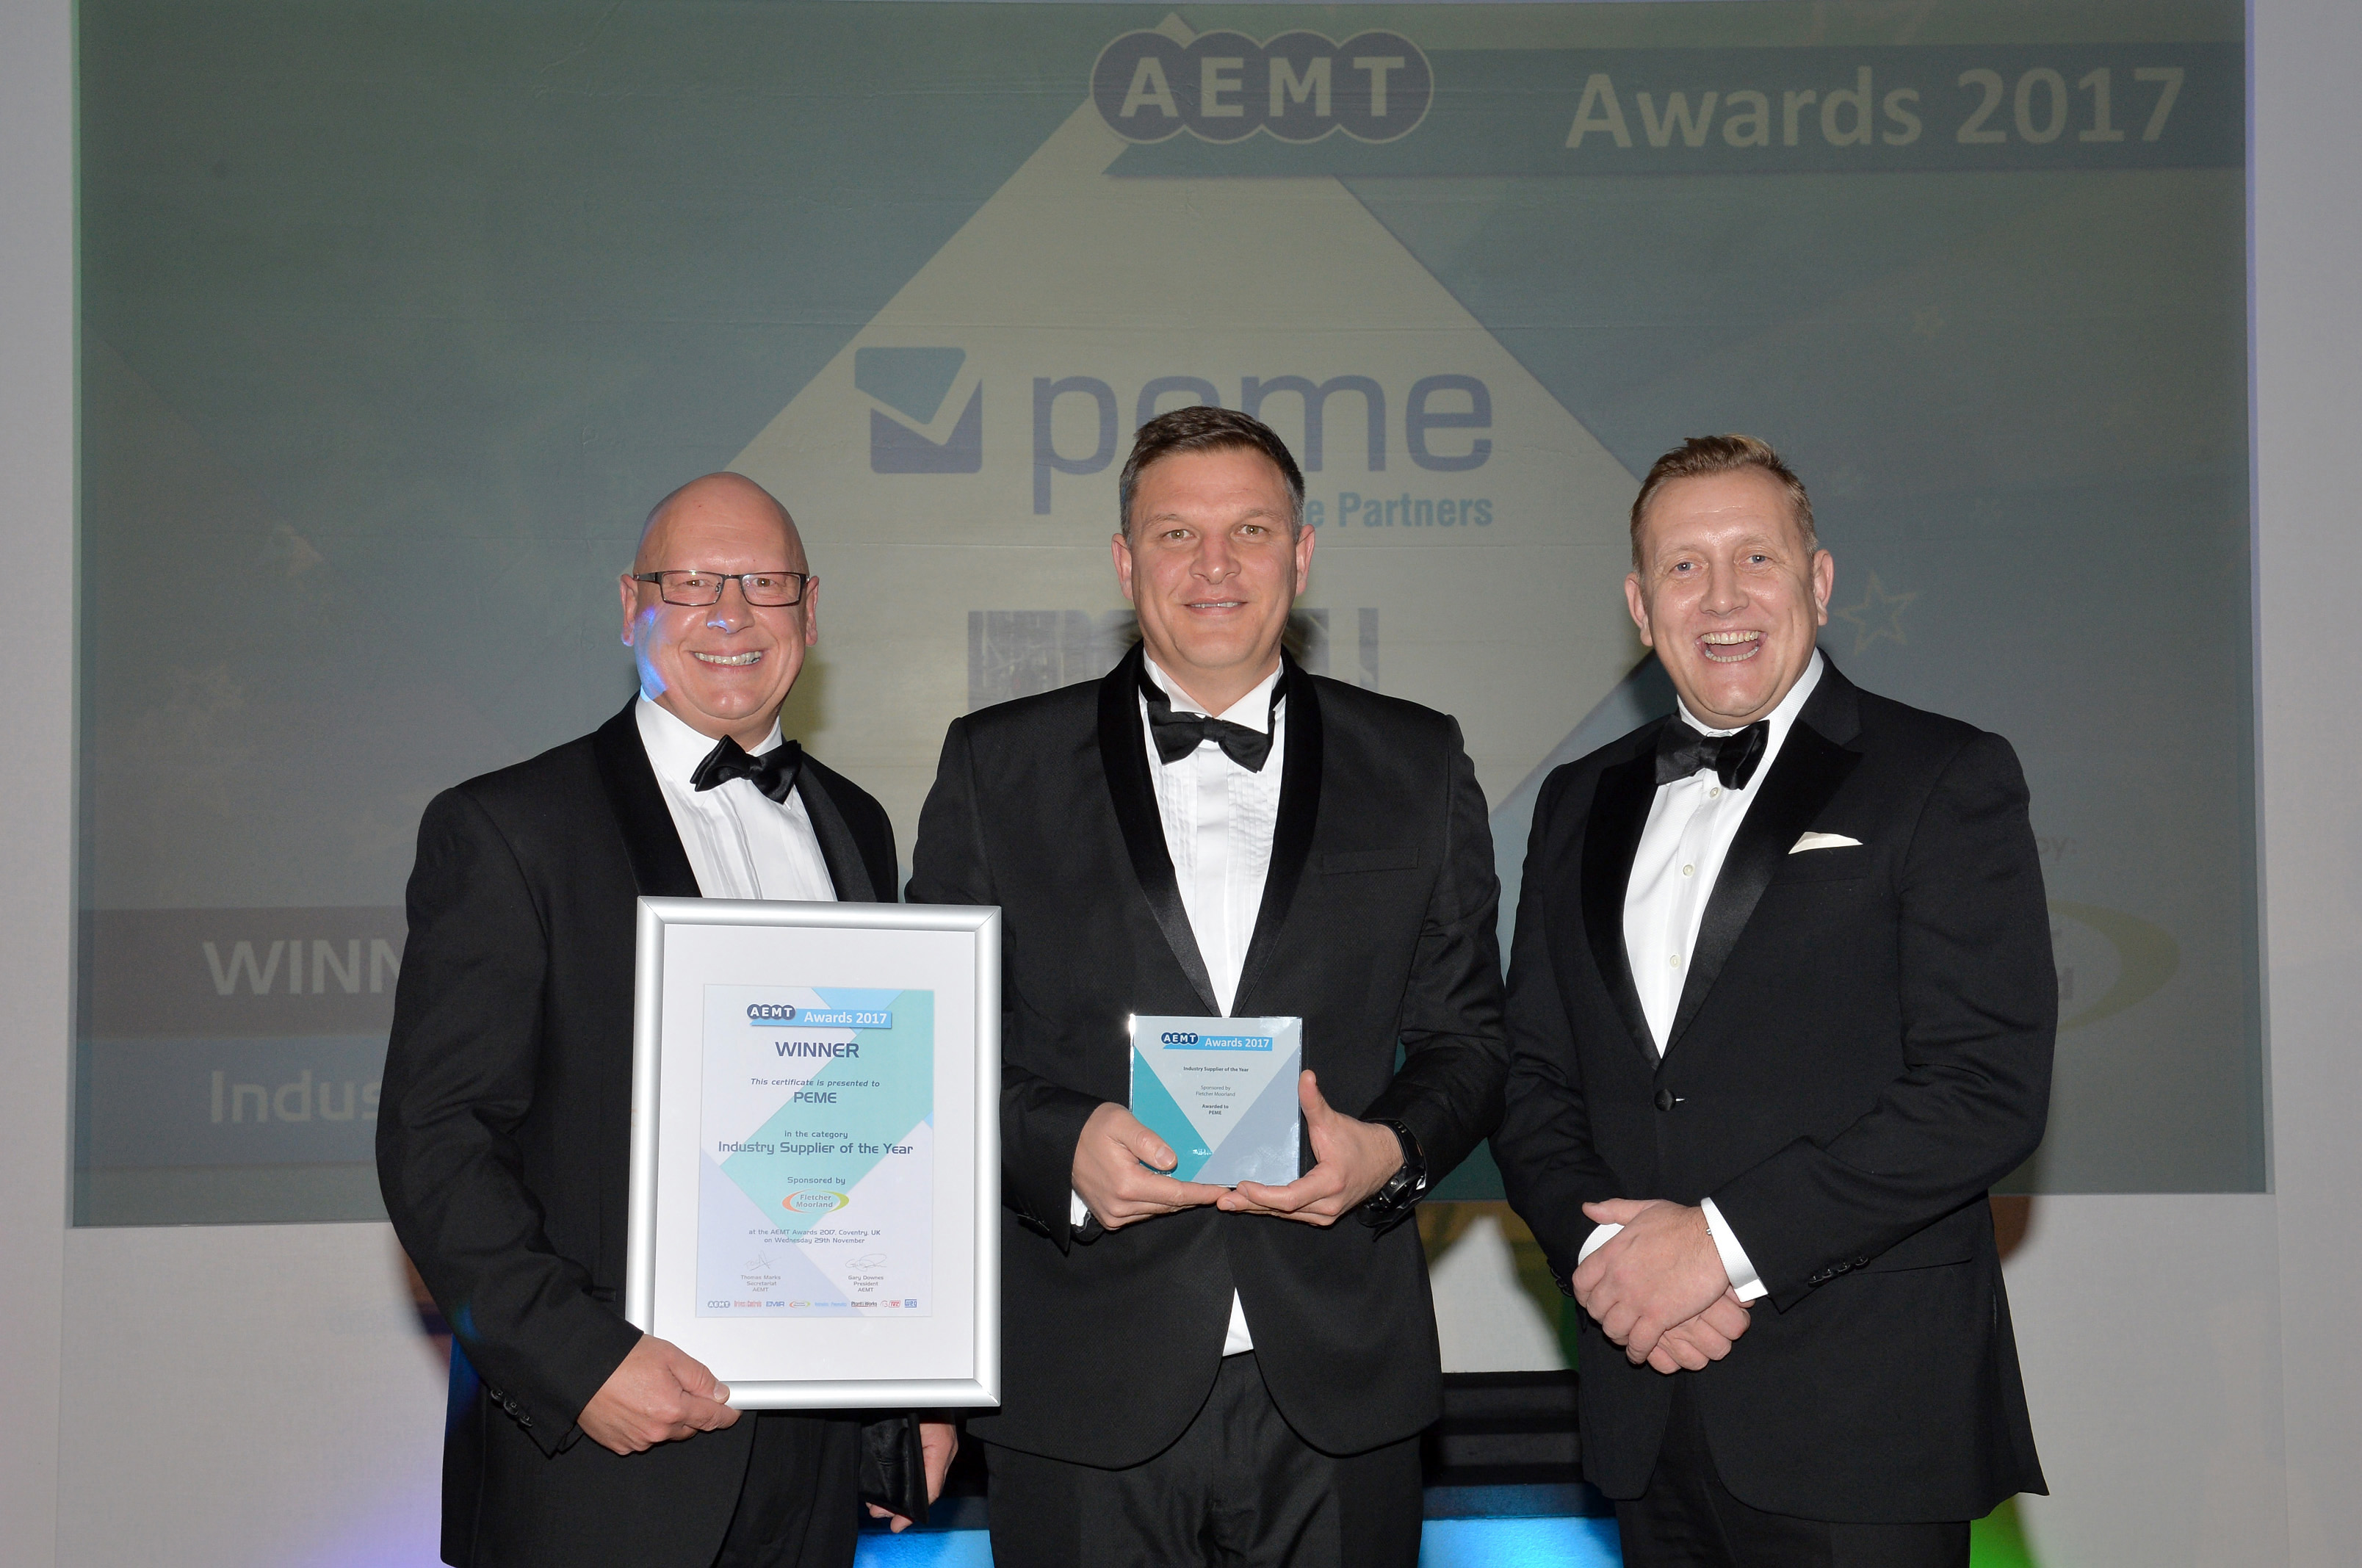 AEMT Awards 2017 at the Doubletree Hilton, Coventry.29.11.17